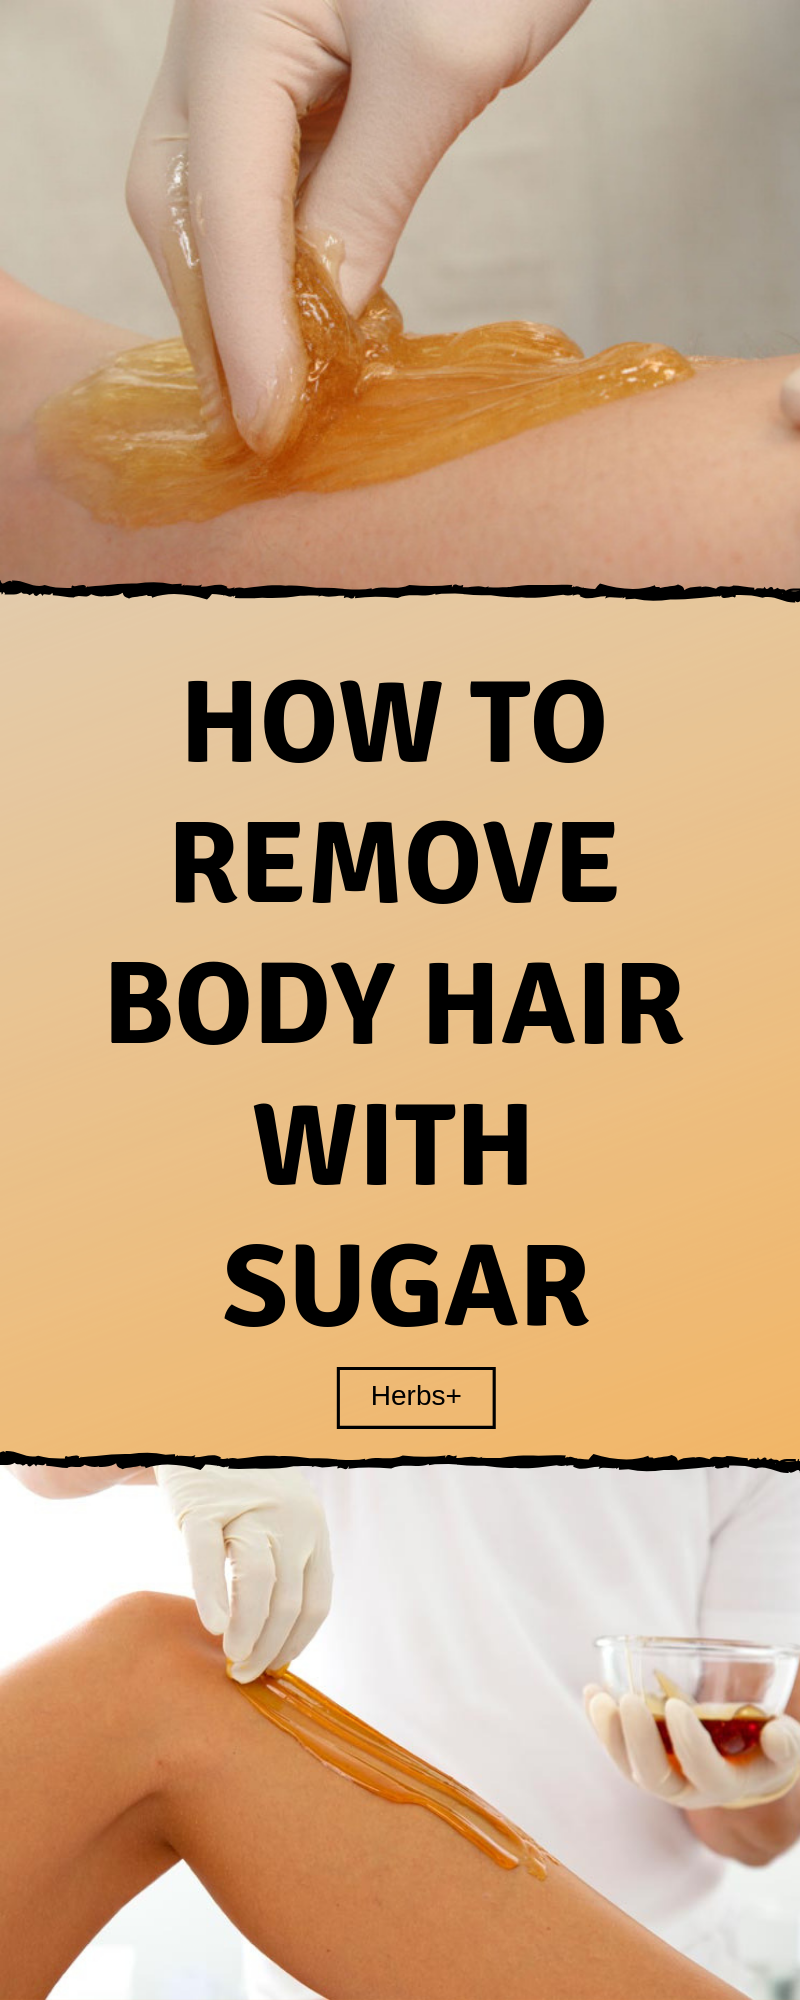 How To Remove Body Hair With Sugar #hairremoval